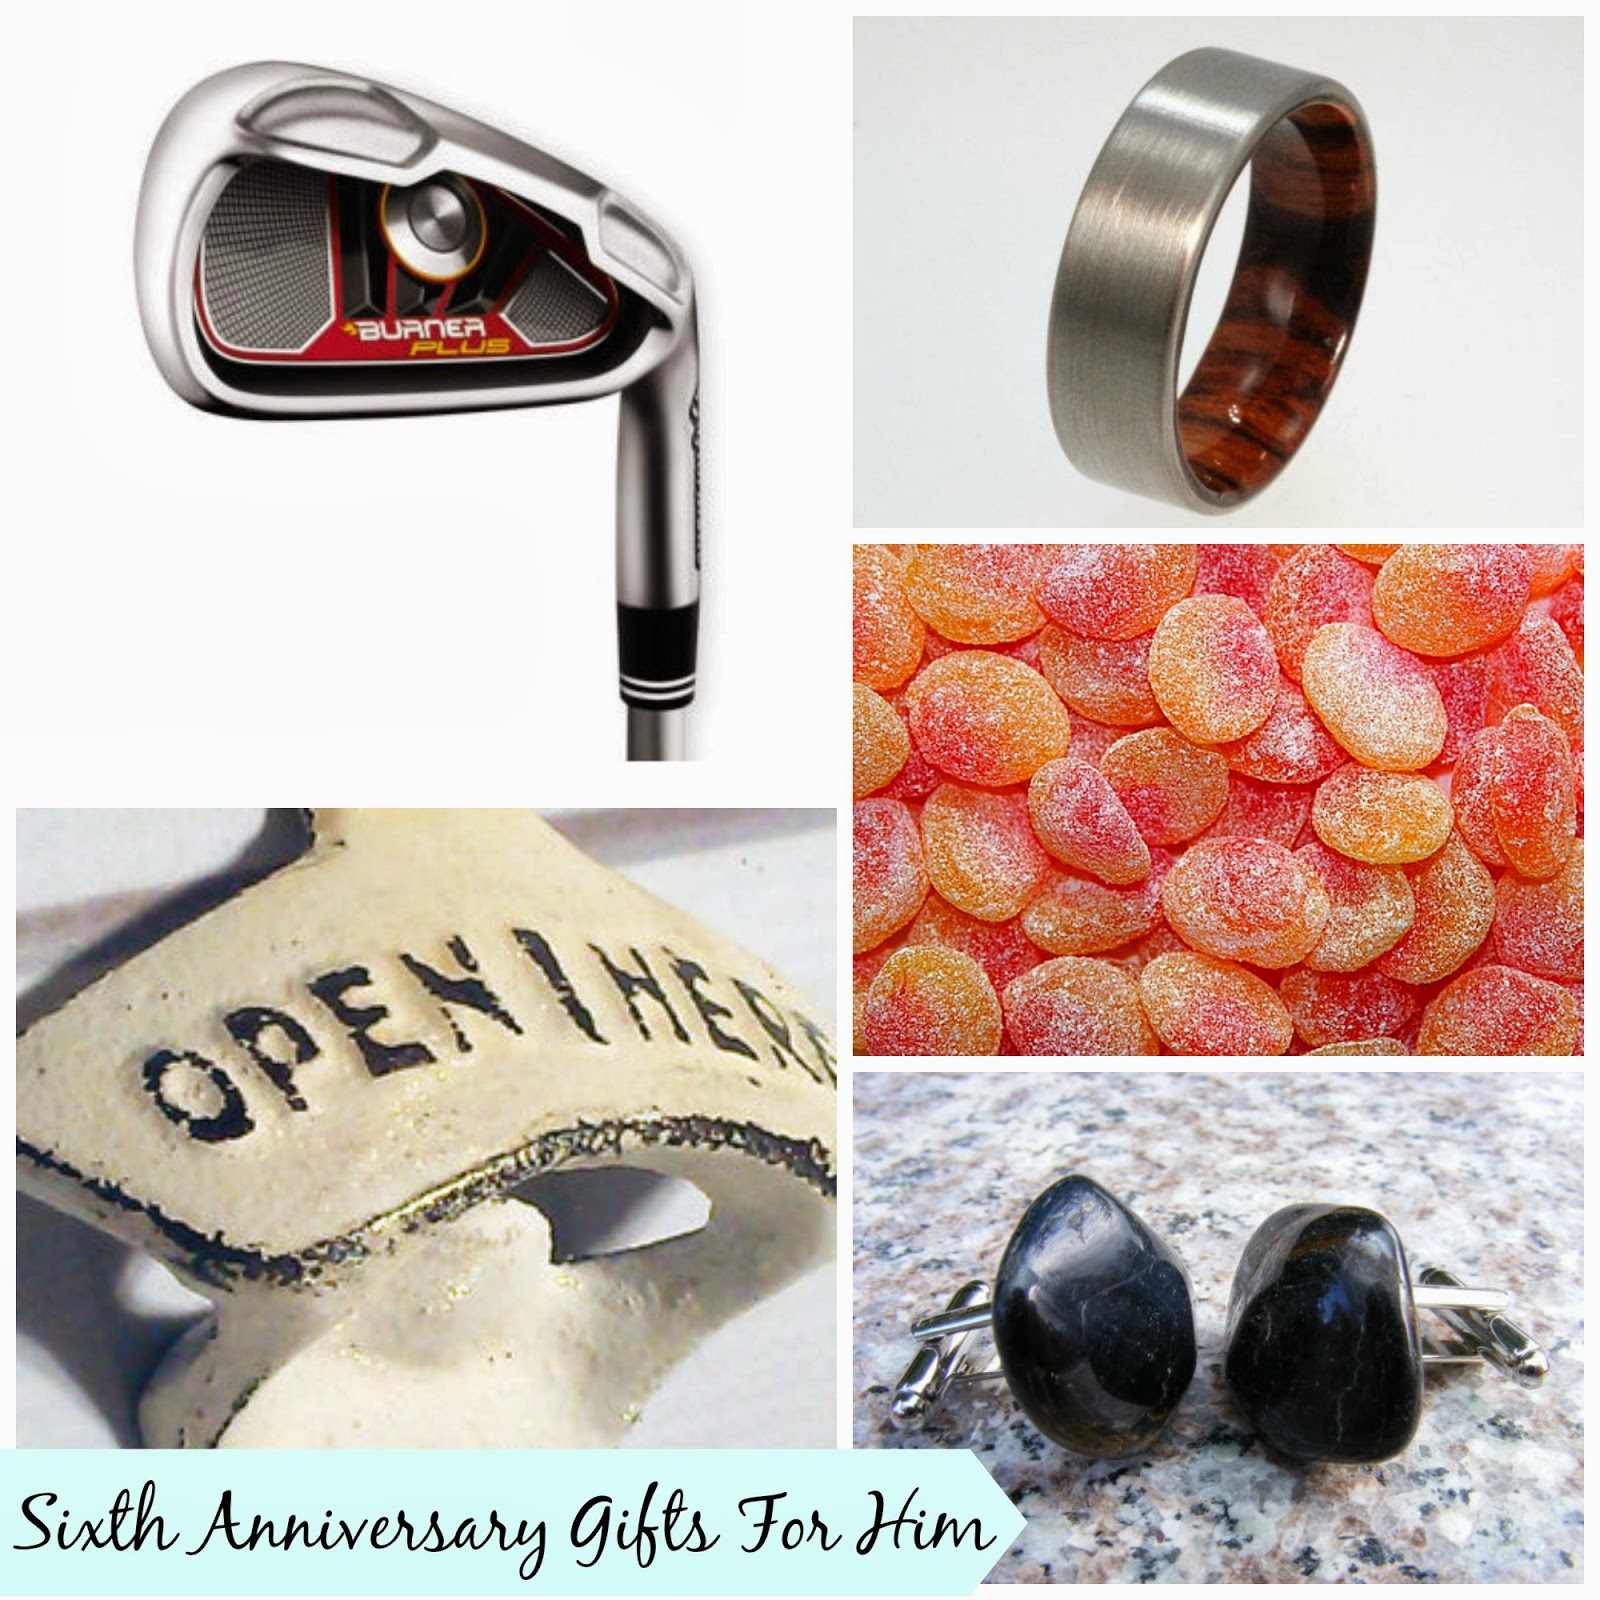 wedding anniversary gifts for him 6th wedding anniversary gift ideas iron gifts for 6th wedding anniversary sweet stellas sixth wedding anniversary gifts for him giftguide